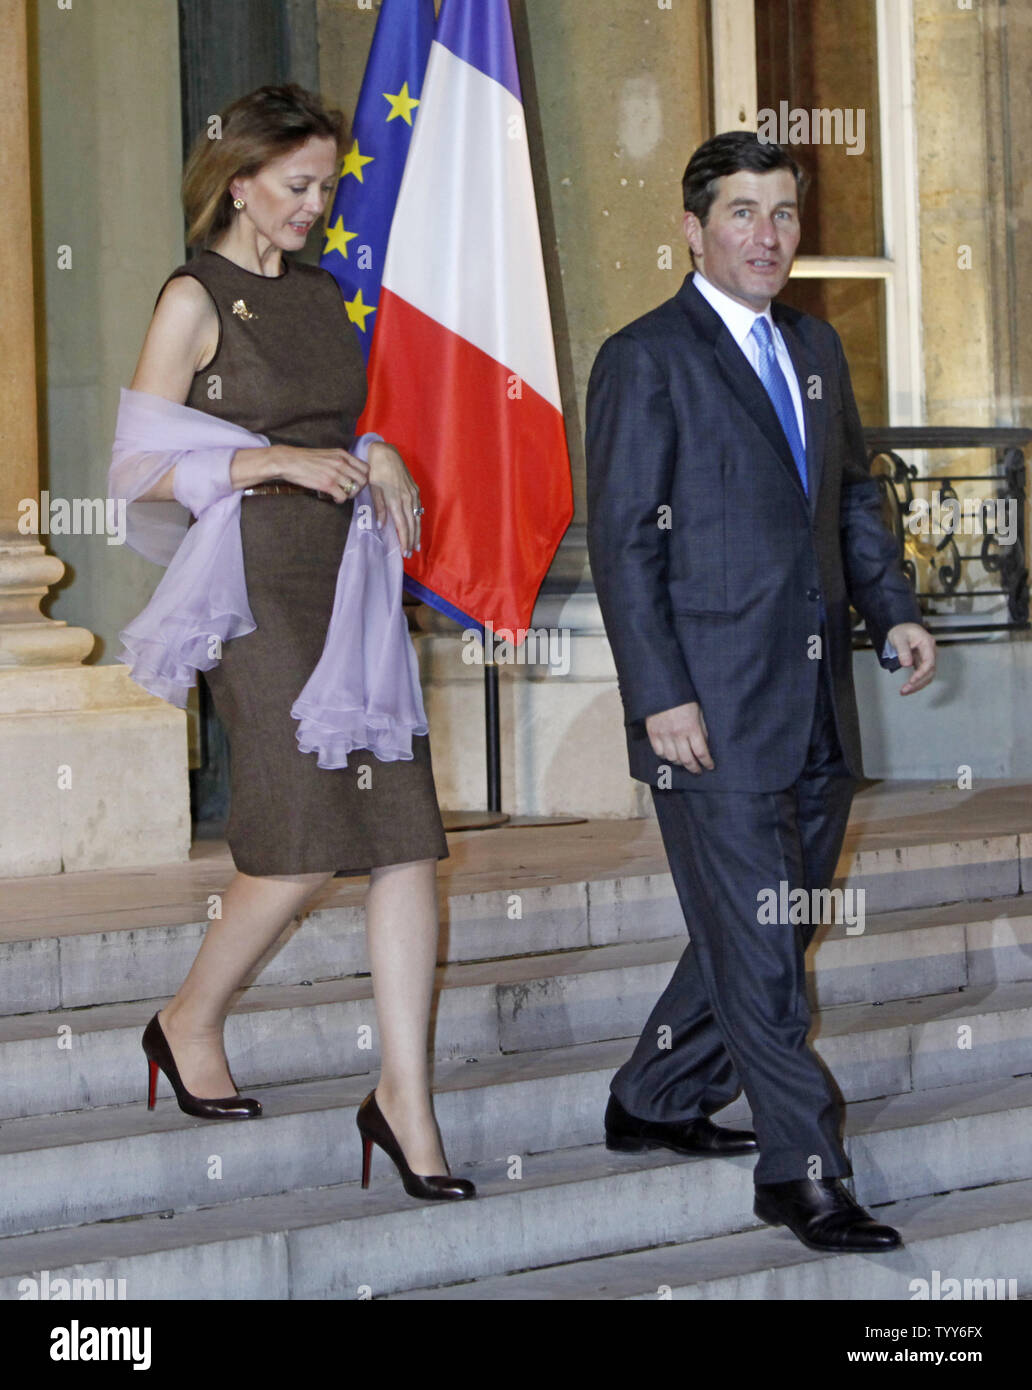 American Ambassador to France Charles Rivkin and his wife